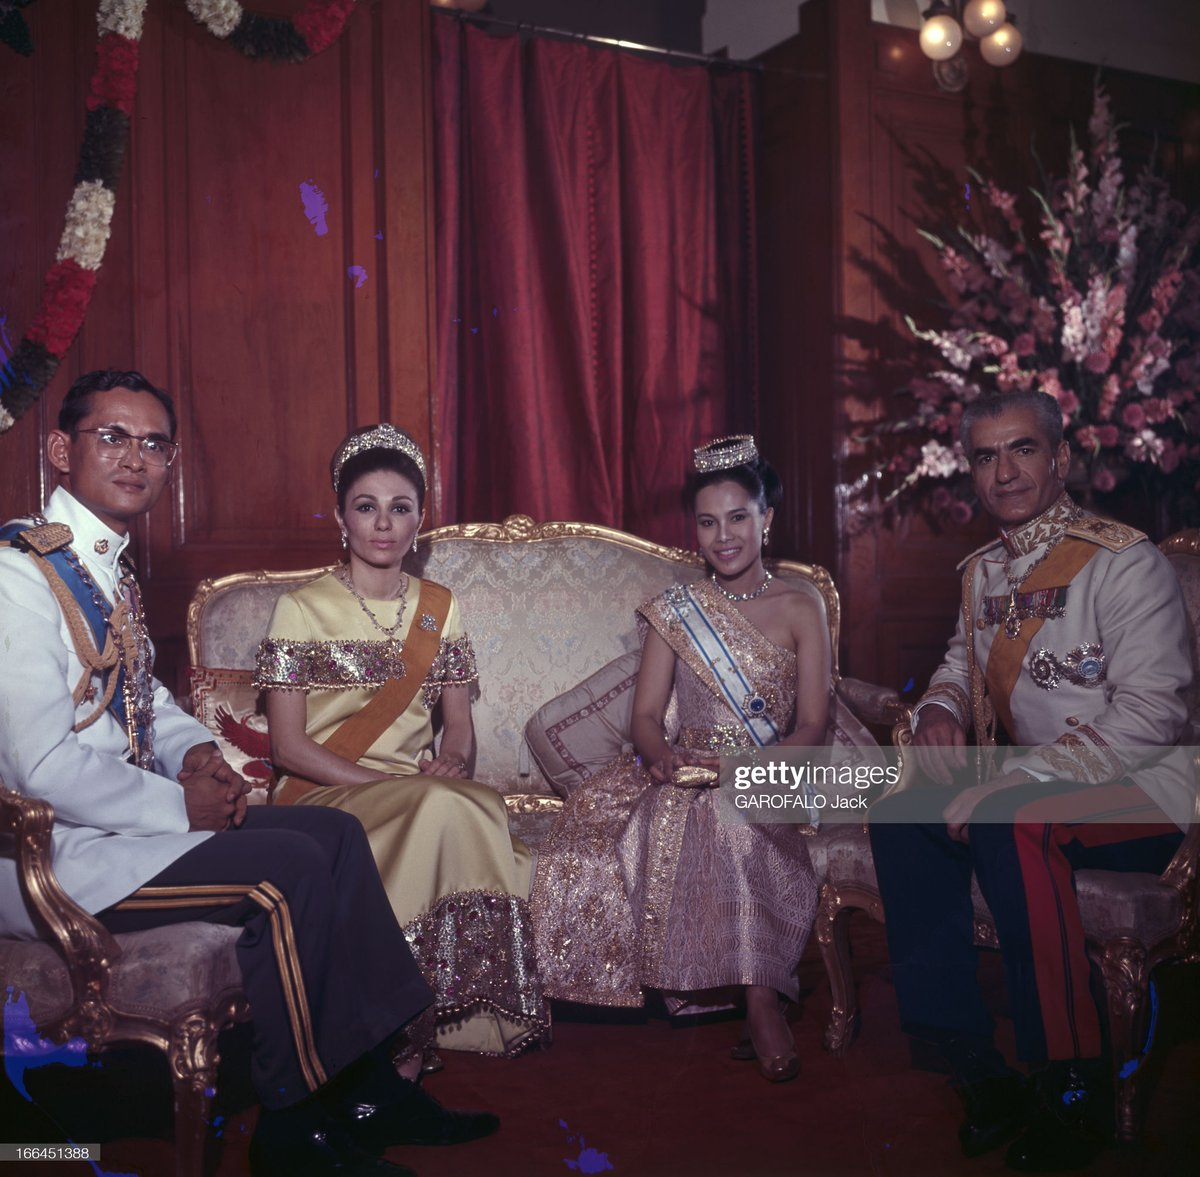 #RoyalFlashback   King Bhumibol Adulyadej and Queen Sirikit host a magnificent Banquet for the Shah of Iran and Empress Farah at the Dusit Palace in Bangkok #OnThisDay in 1968, during the Iranian State Visit to Thailand: